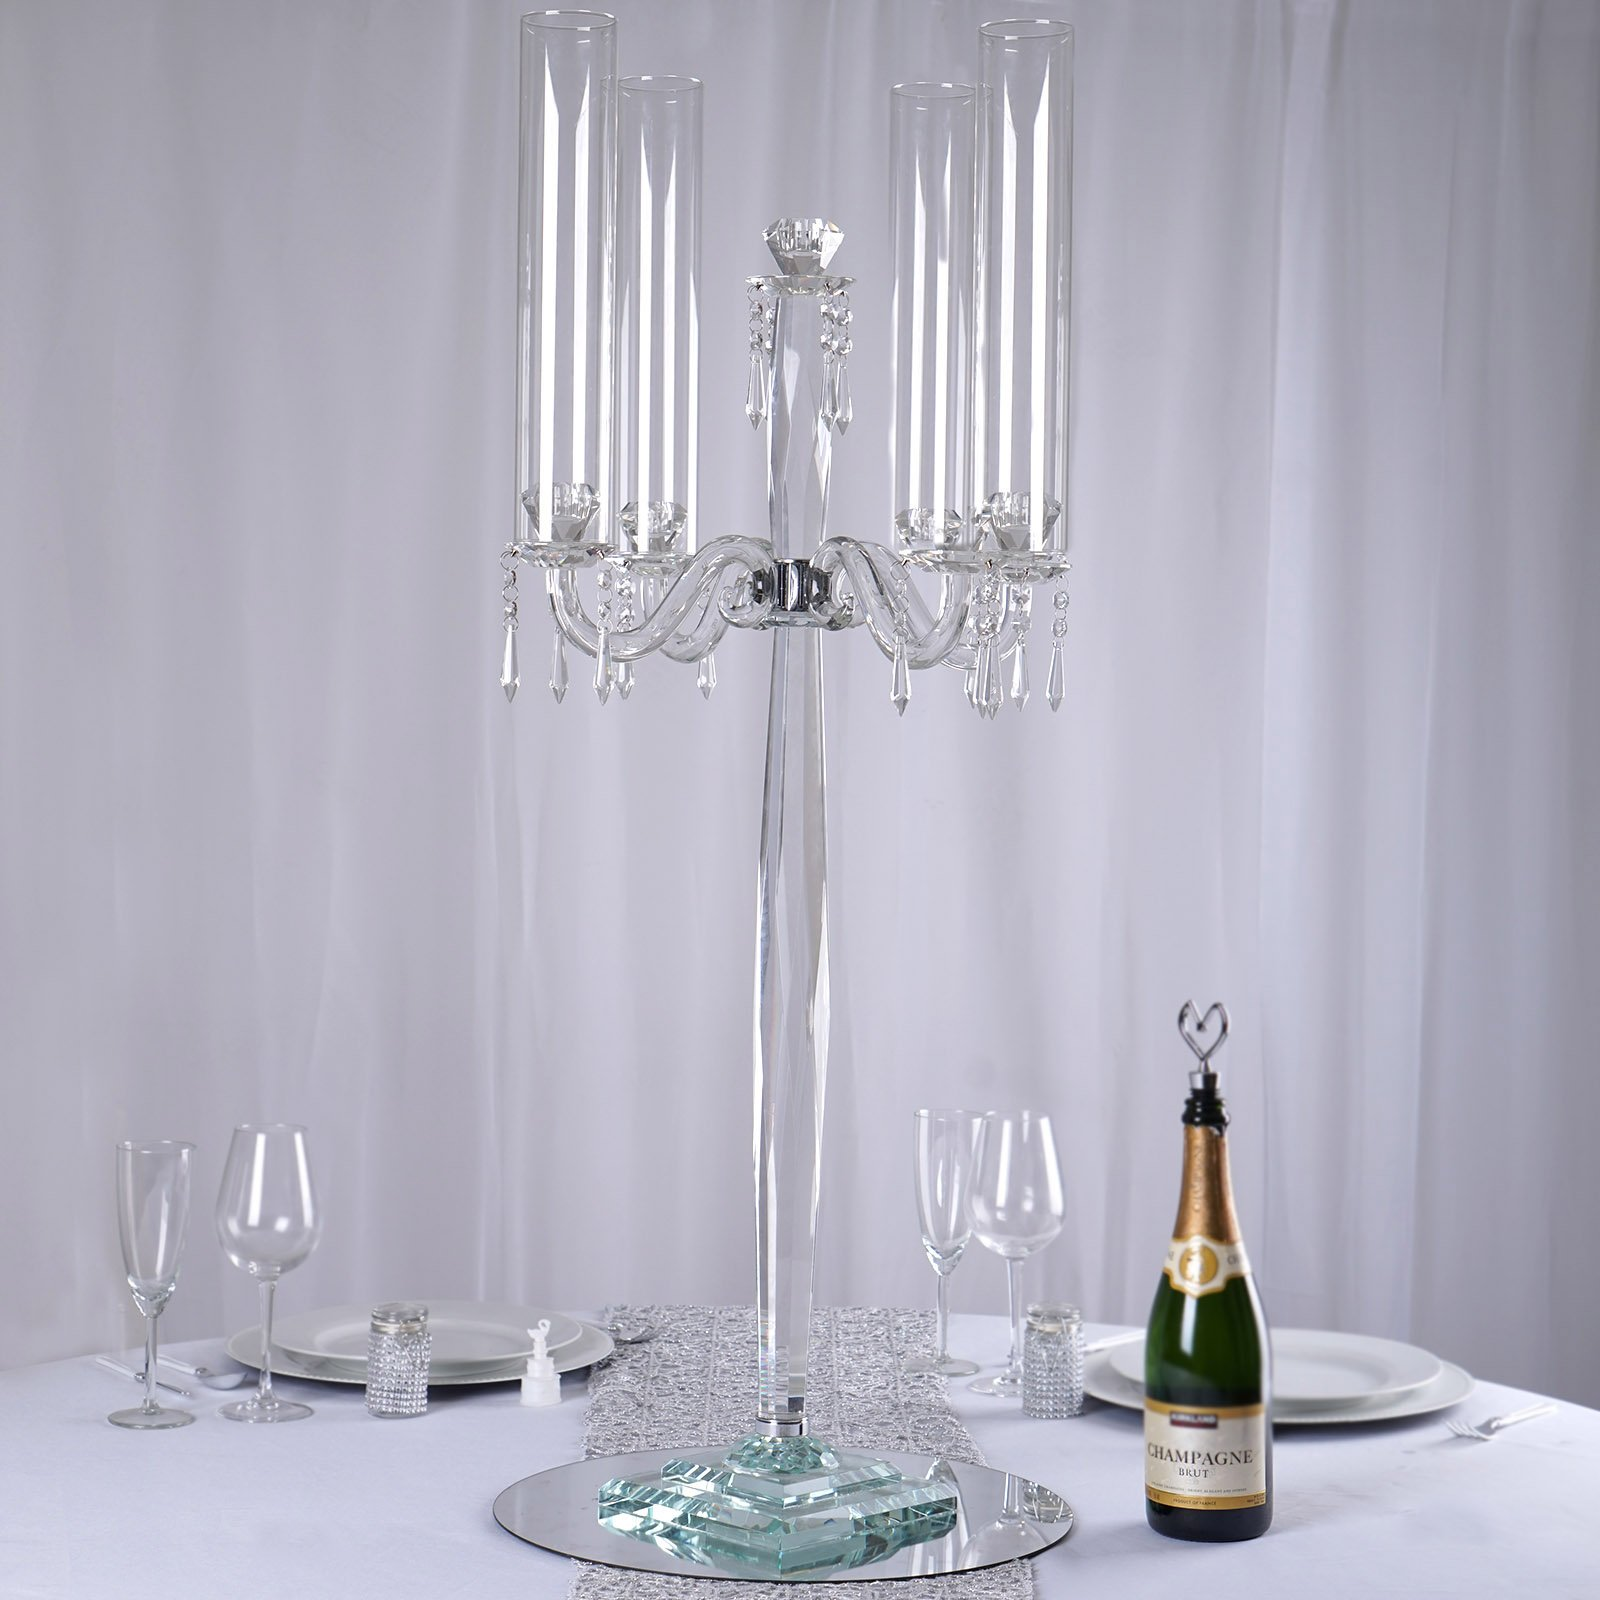 Efavormart 35 5 Tall Handcrafted 4 Arm Crystal Glass Tabletop Candelabra Baroque Taper Votive Candle Holder Centerpieces Premium Walmart Com Walmart Com